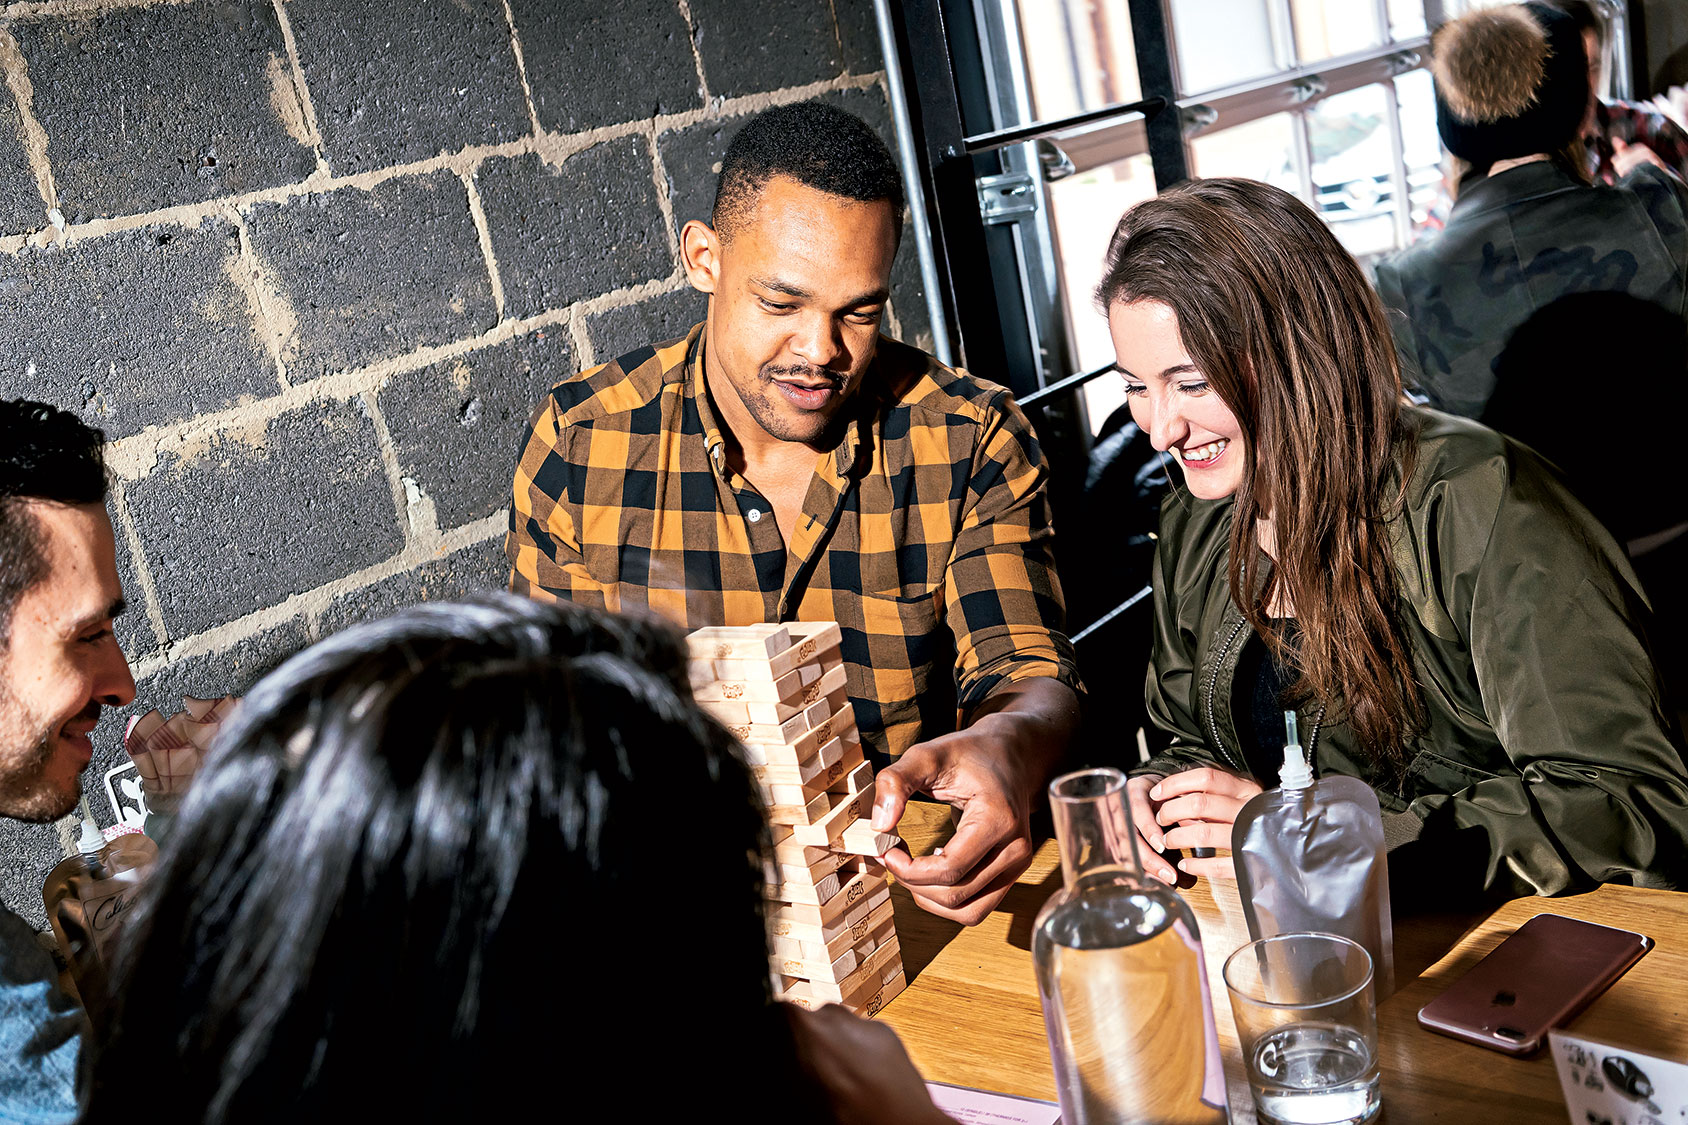 Hanging out (and playing Jenga) at Calico, the indoor/outdoor bar at Shaw's Blagden Alley.